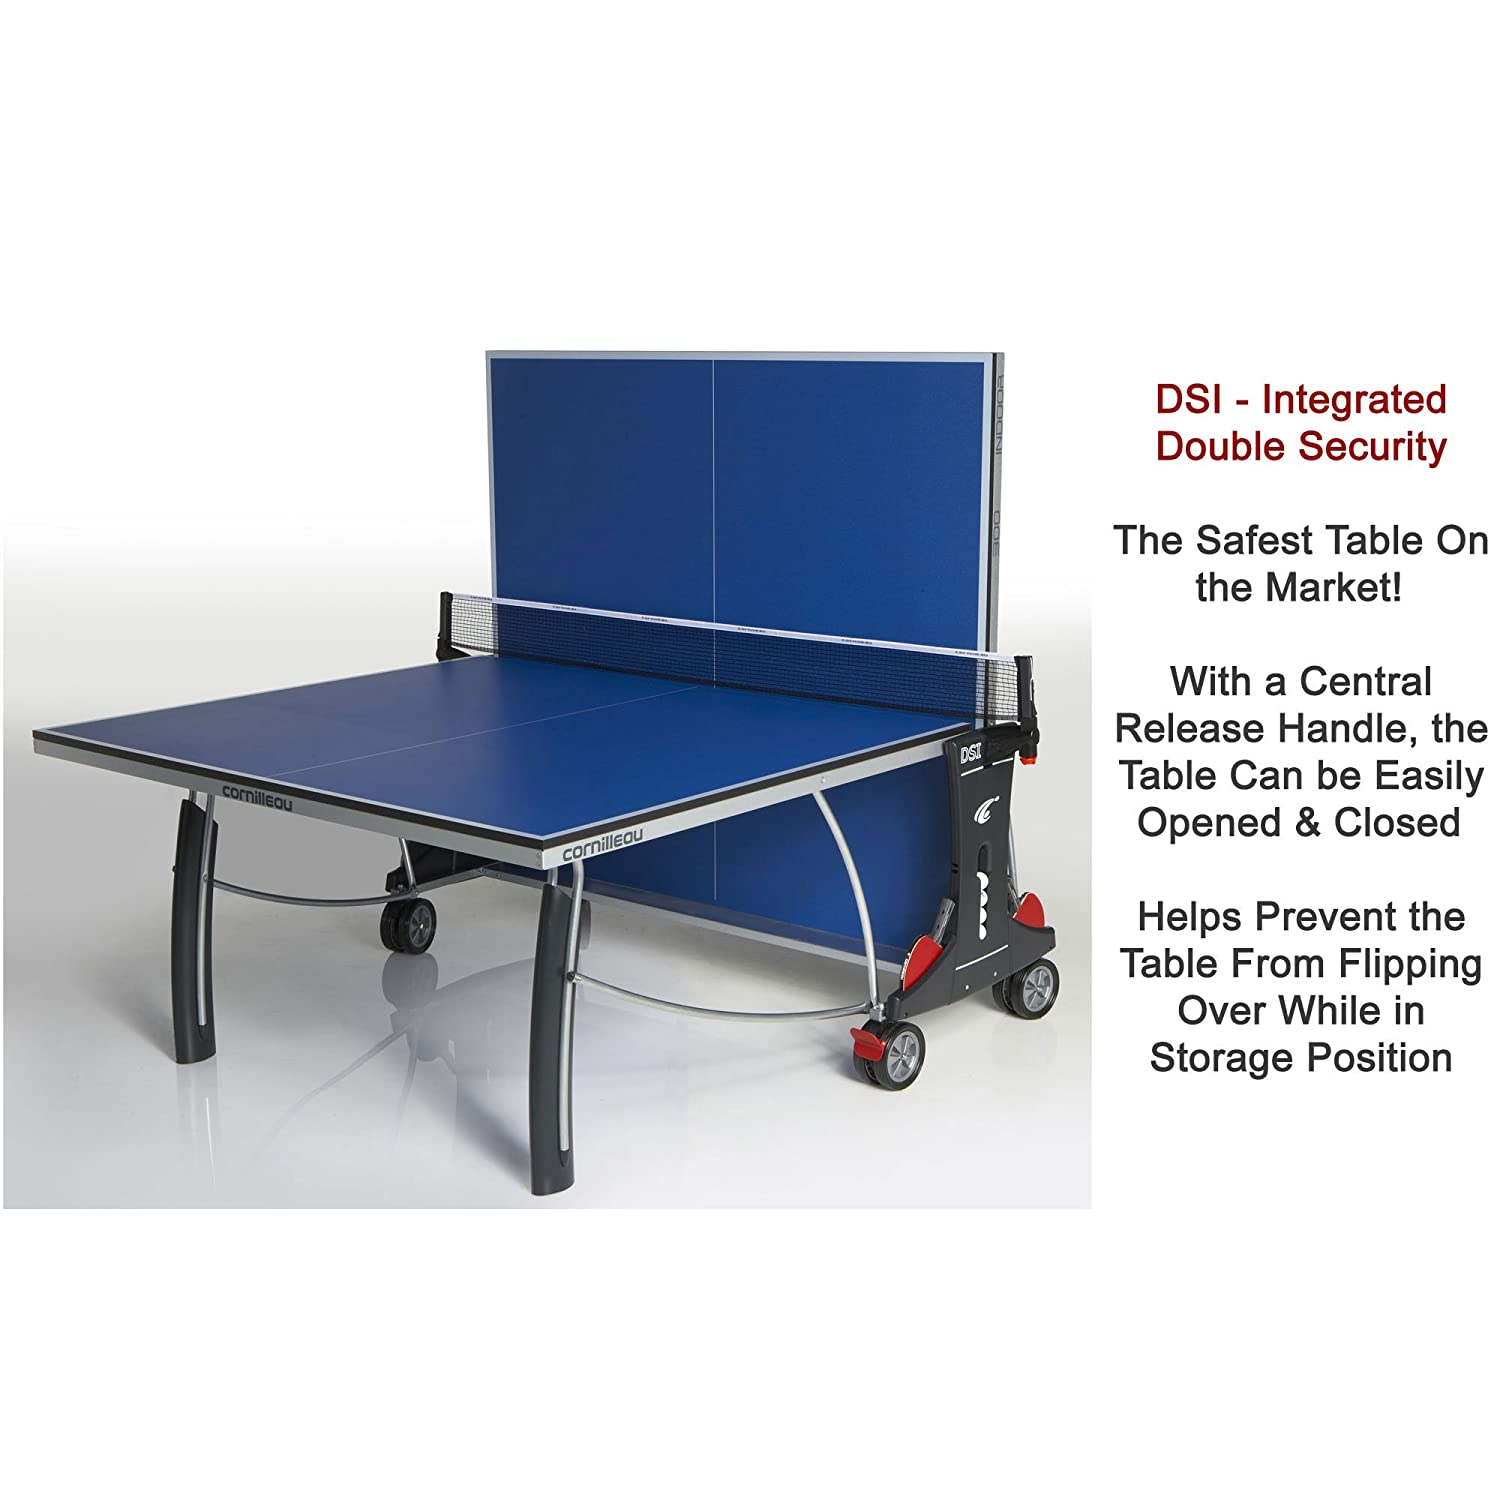 Cornilleau Sport 300 Blue Indoor Rollaway Table Tennis Table No   Amazon.co.uk  Sports   Outdoors c0023e1ed9cd